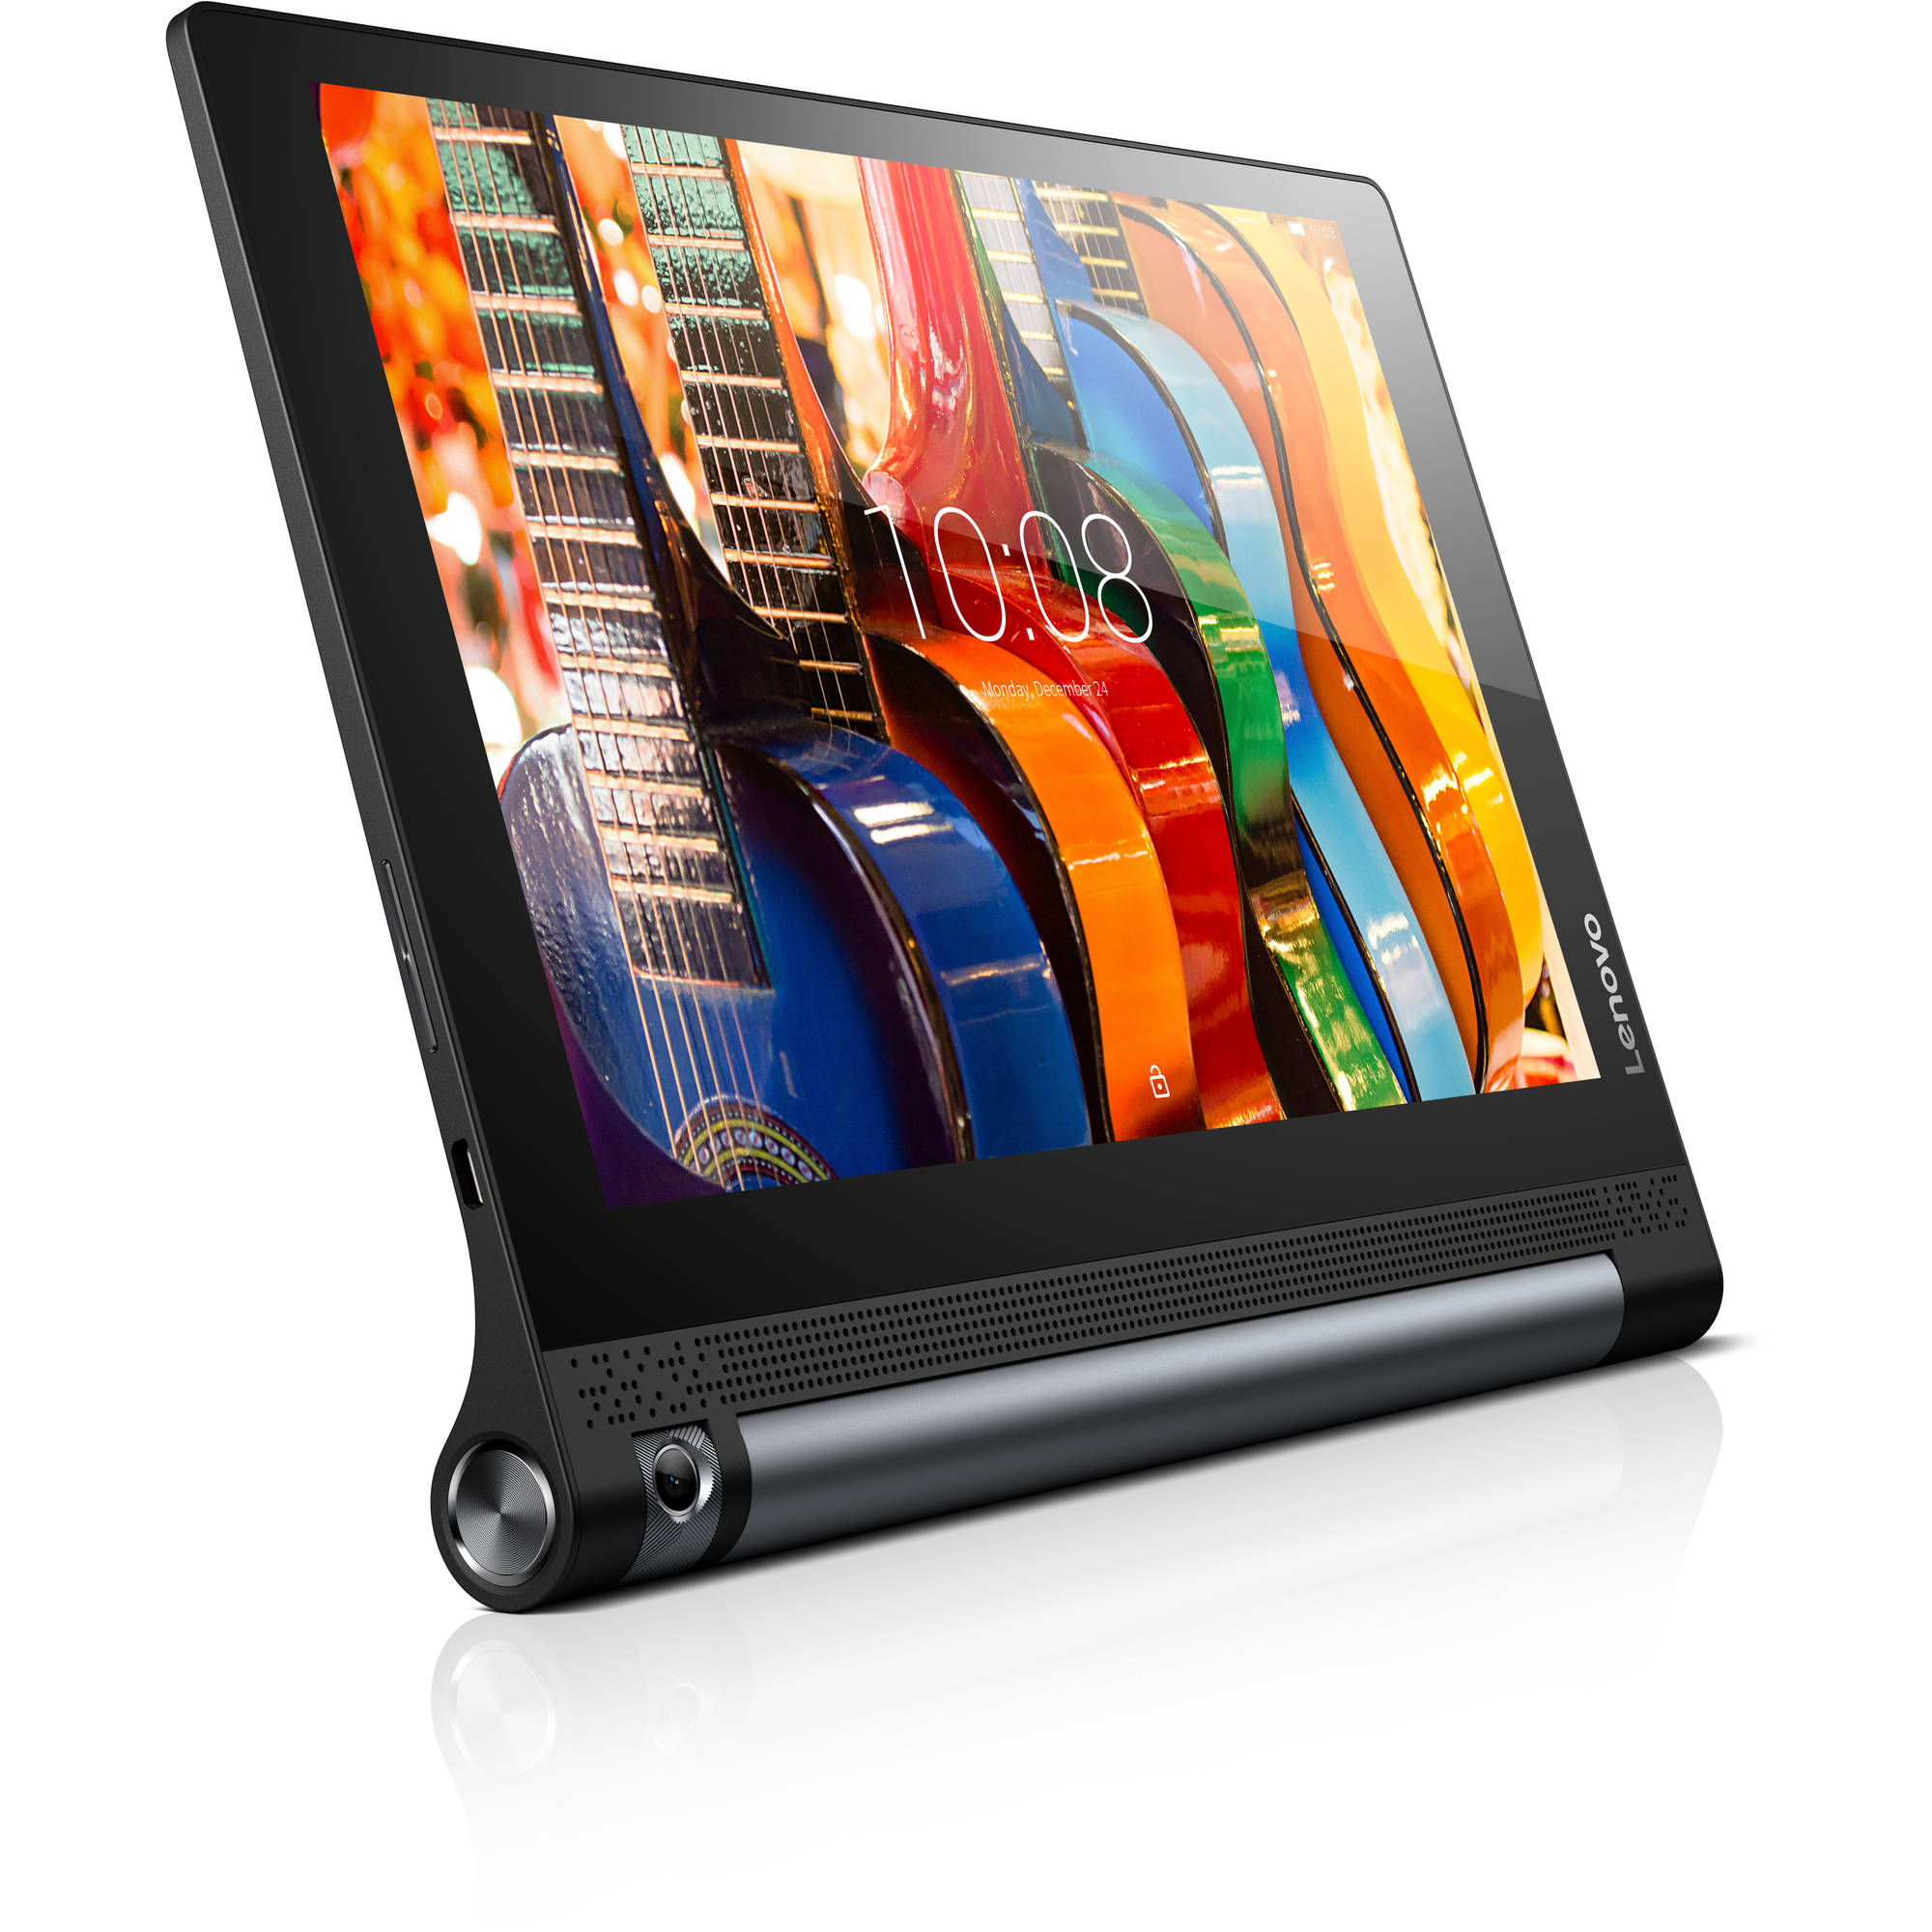 "Lenovo YOGA Tab 3 with WiFi 10.1"" Touchscreen Tablet PC Featuring Android 5.1 (Lollipop) Operating System"